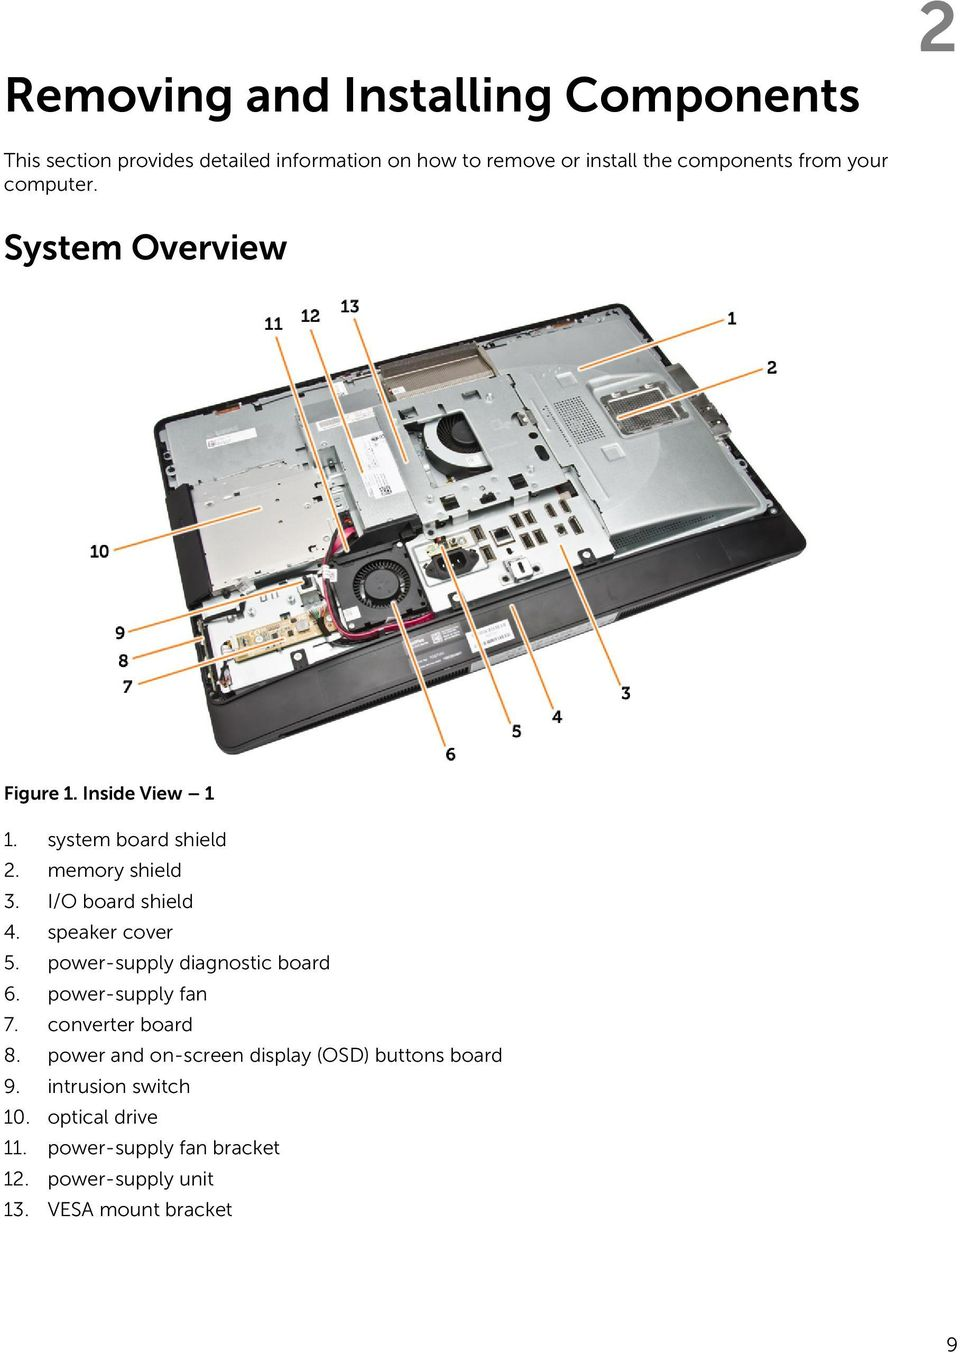 speaker cover 5. power-supply diagnostic board 6. power-supply fan 7. converter board 8.